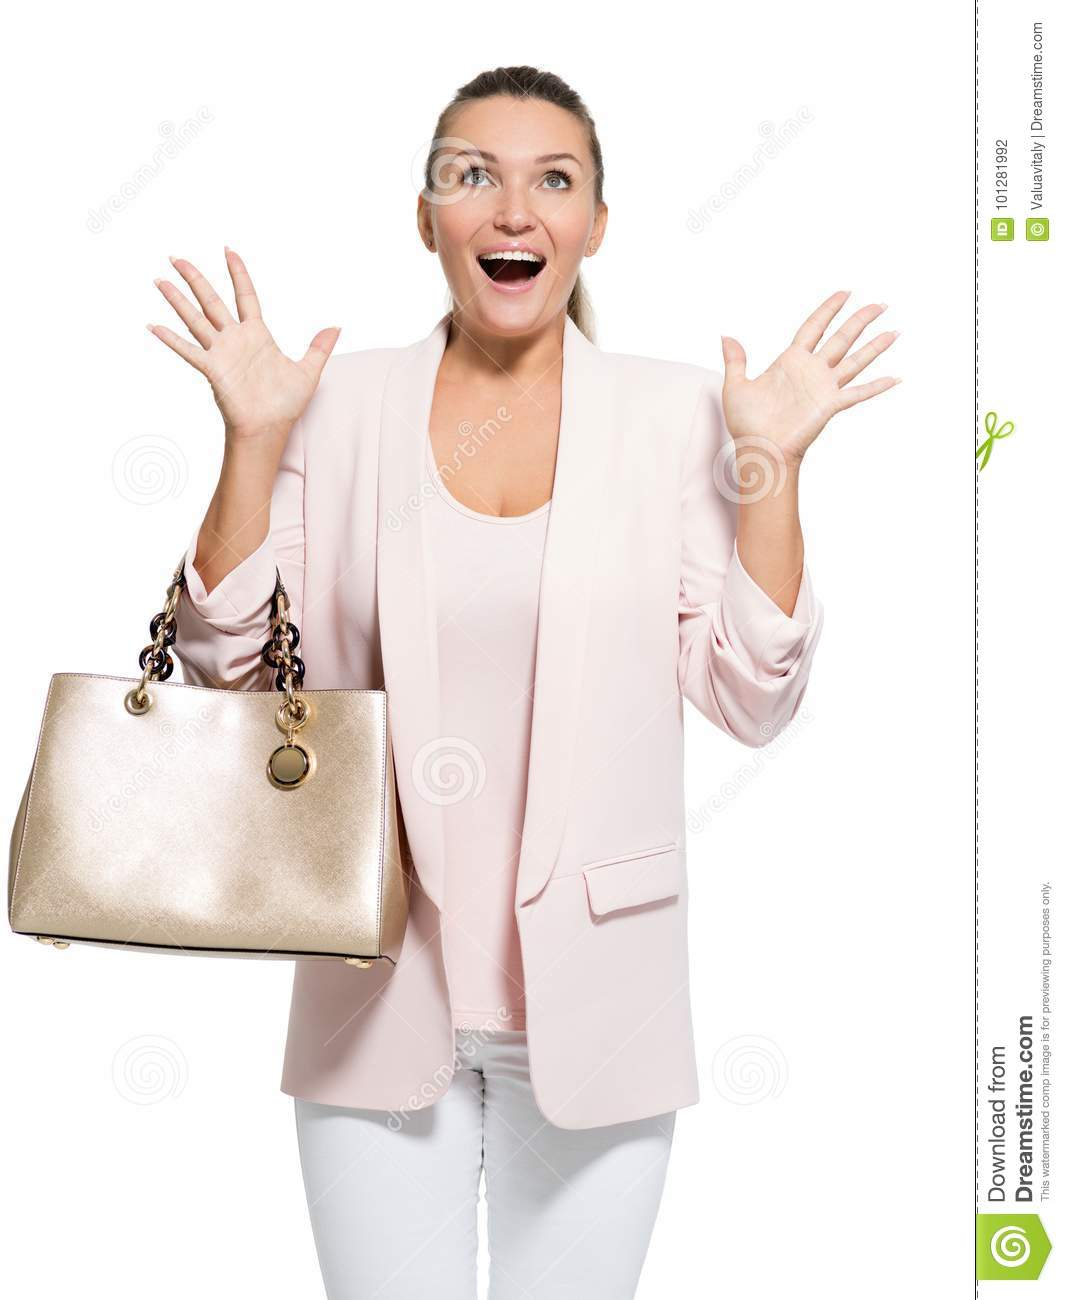 Portrait of a wondering happy woman over white background